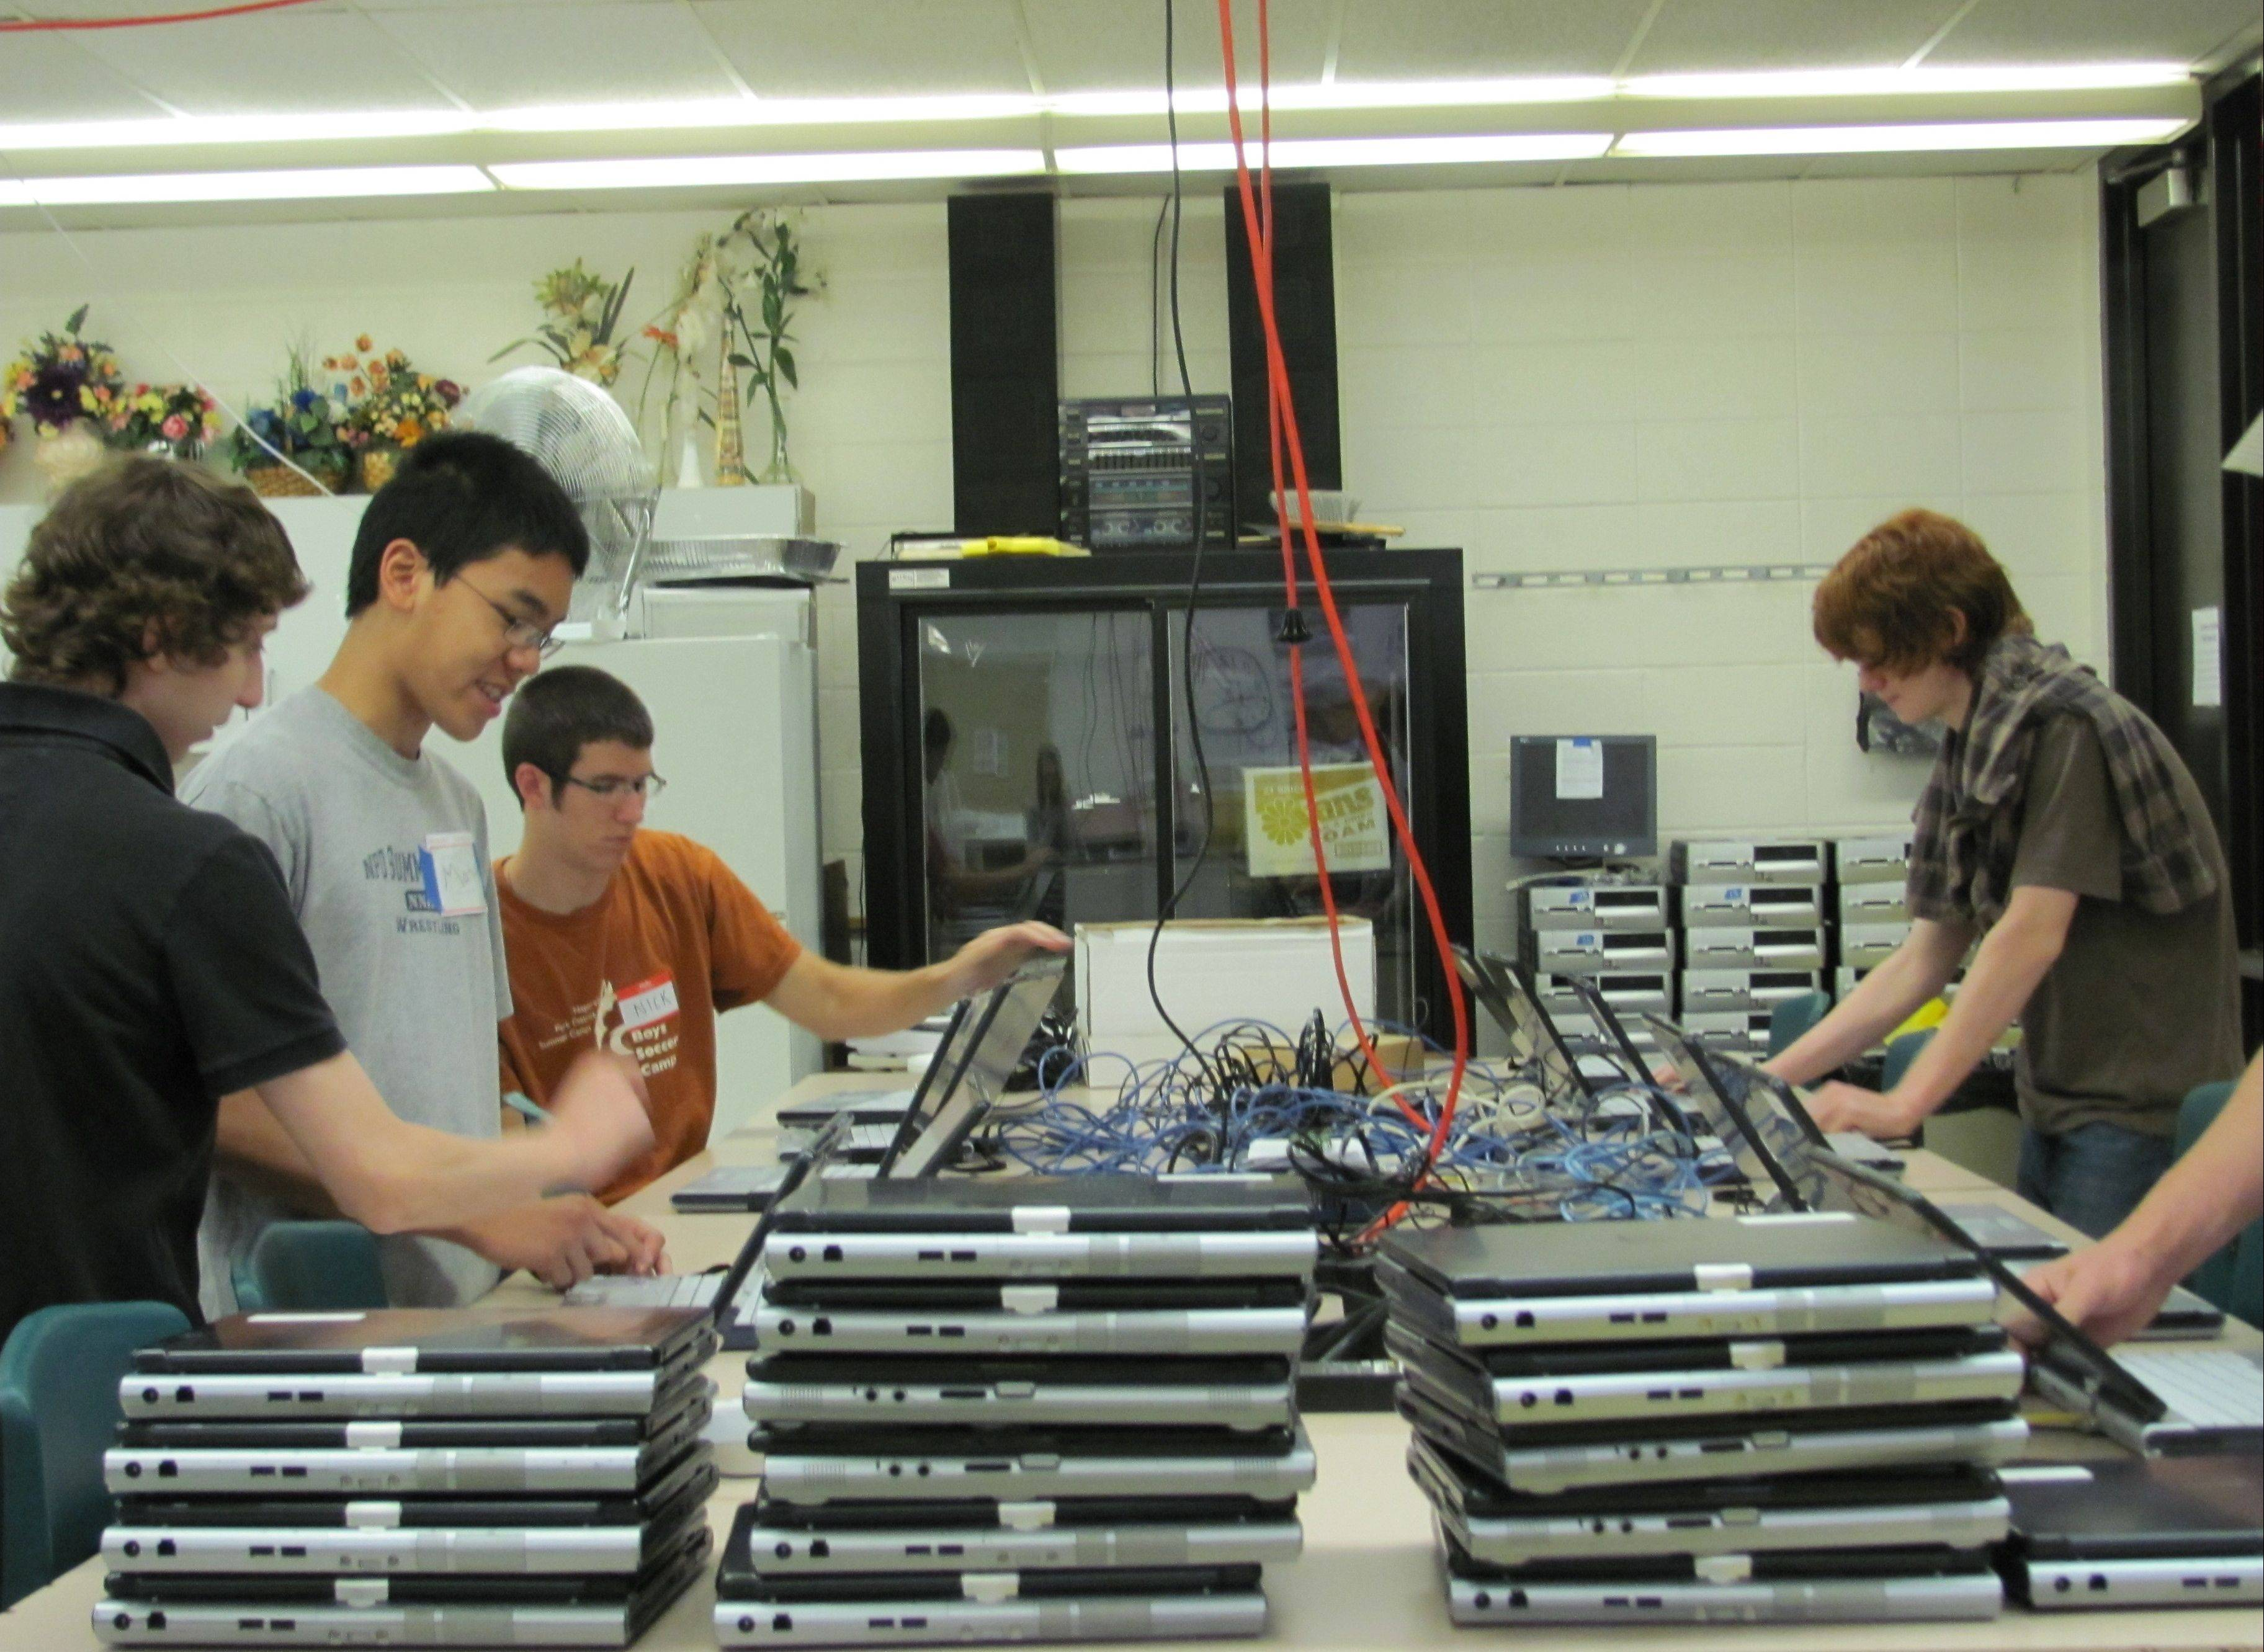 Students Devin Stompanato, Matthew Du, Nick Nelson and Nathan Campbell helped refurbish more than 700 laptop computers this summer.